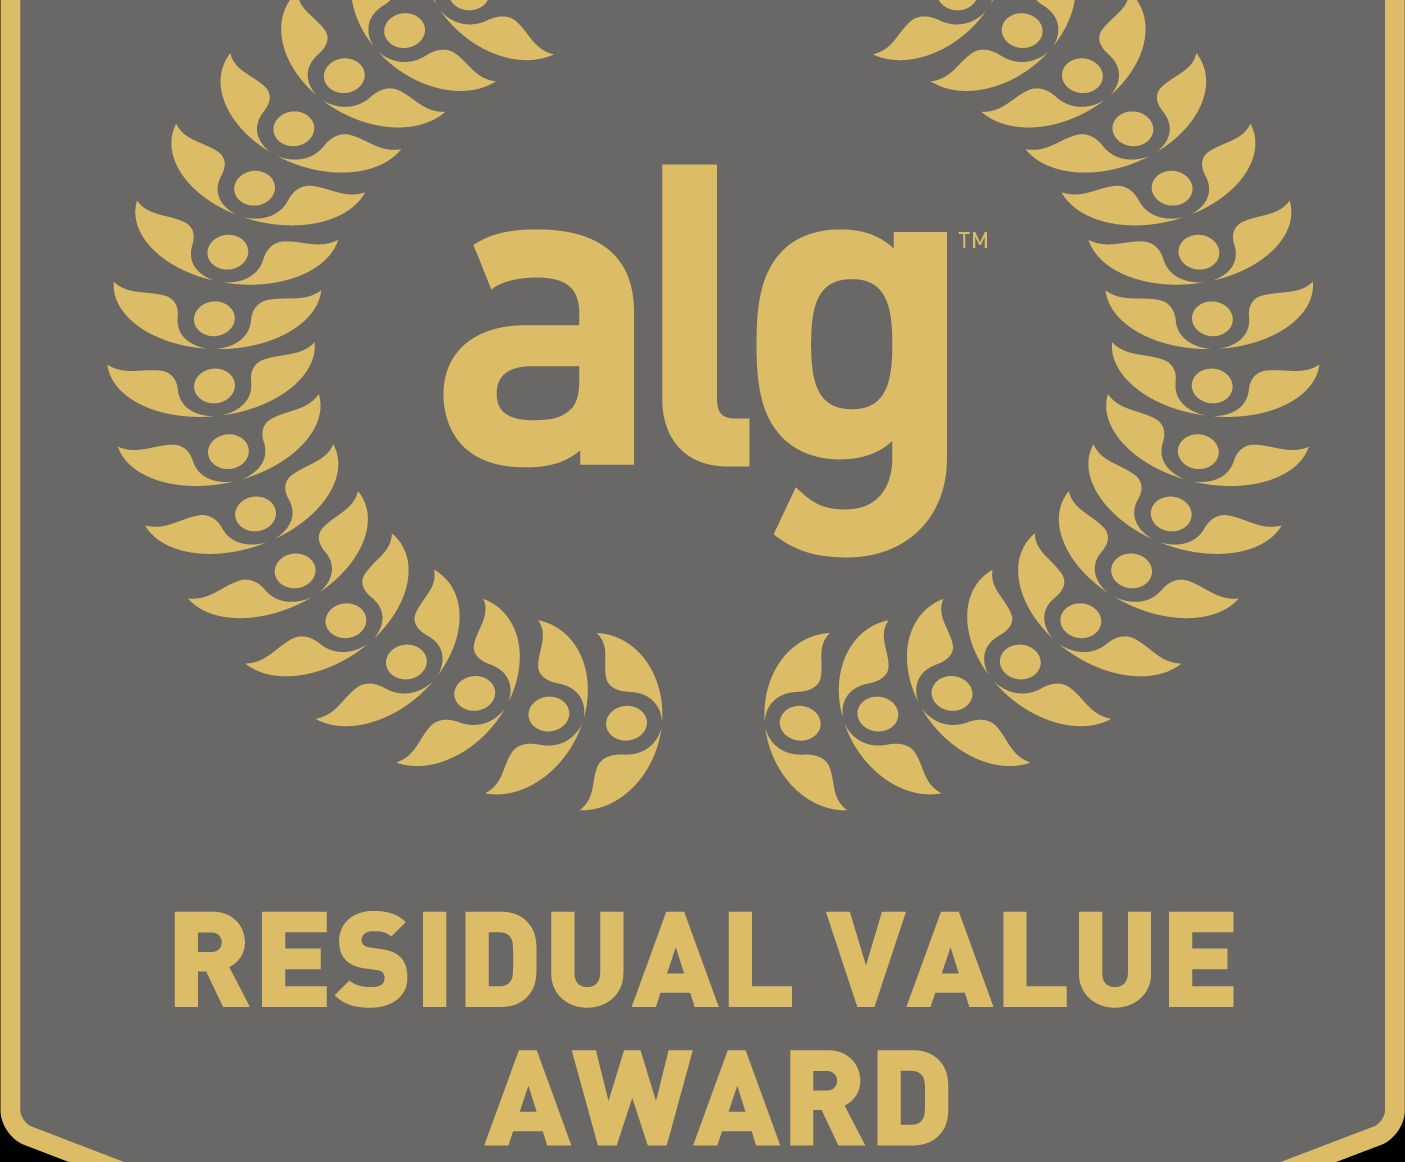 Subaru and Land Rover Earn Top Honors in Residual Value Awards